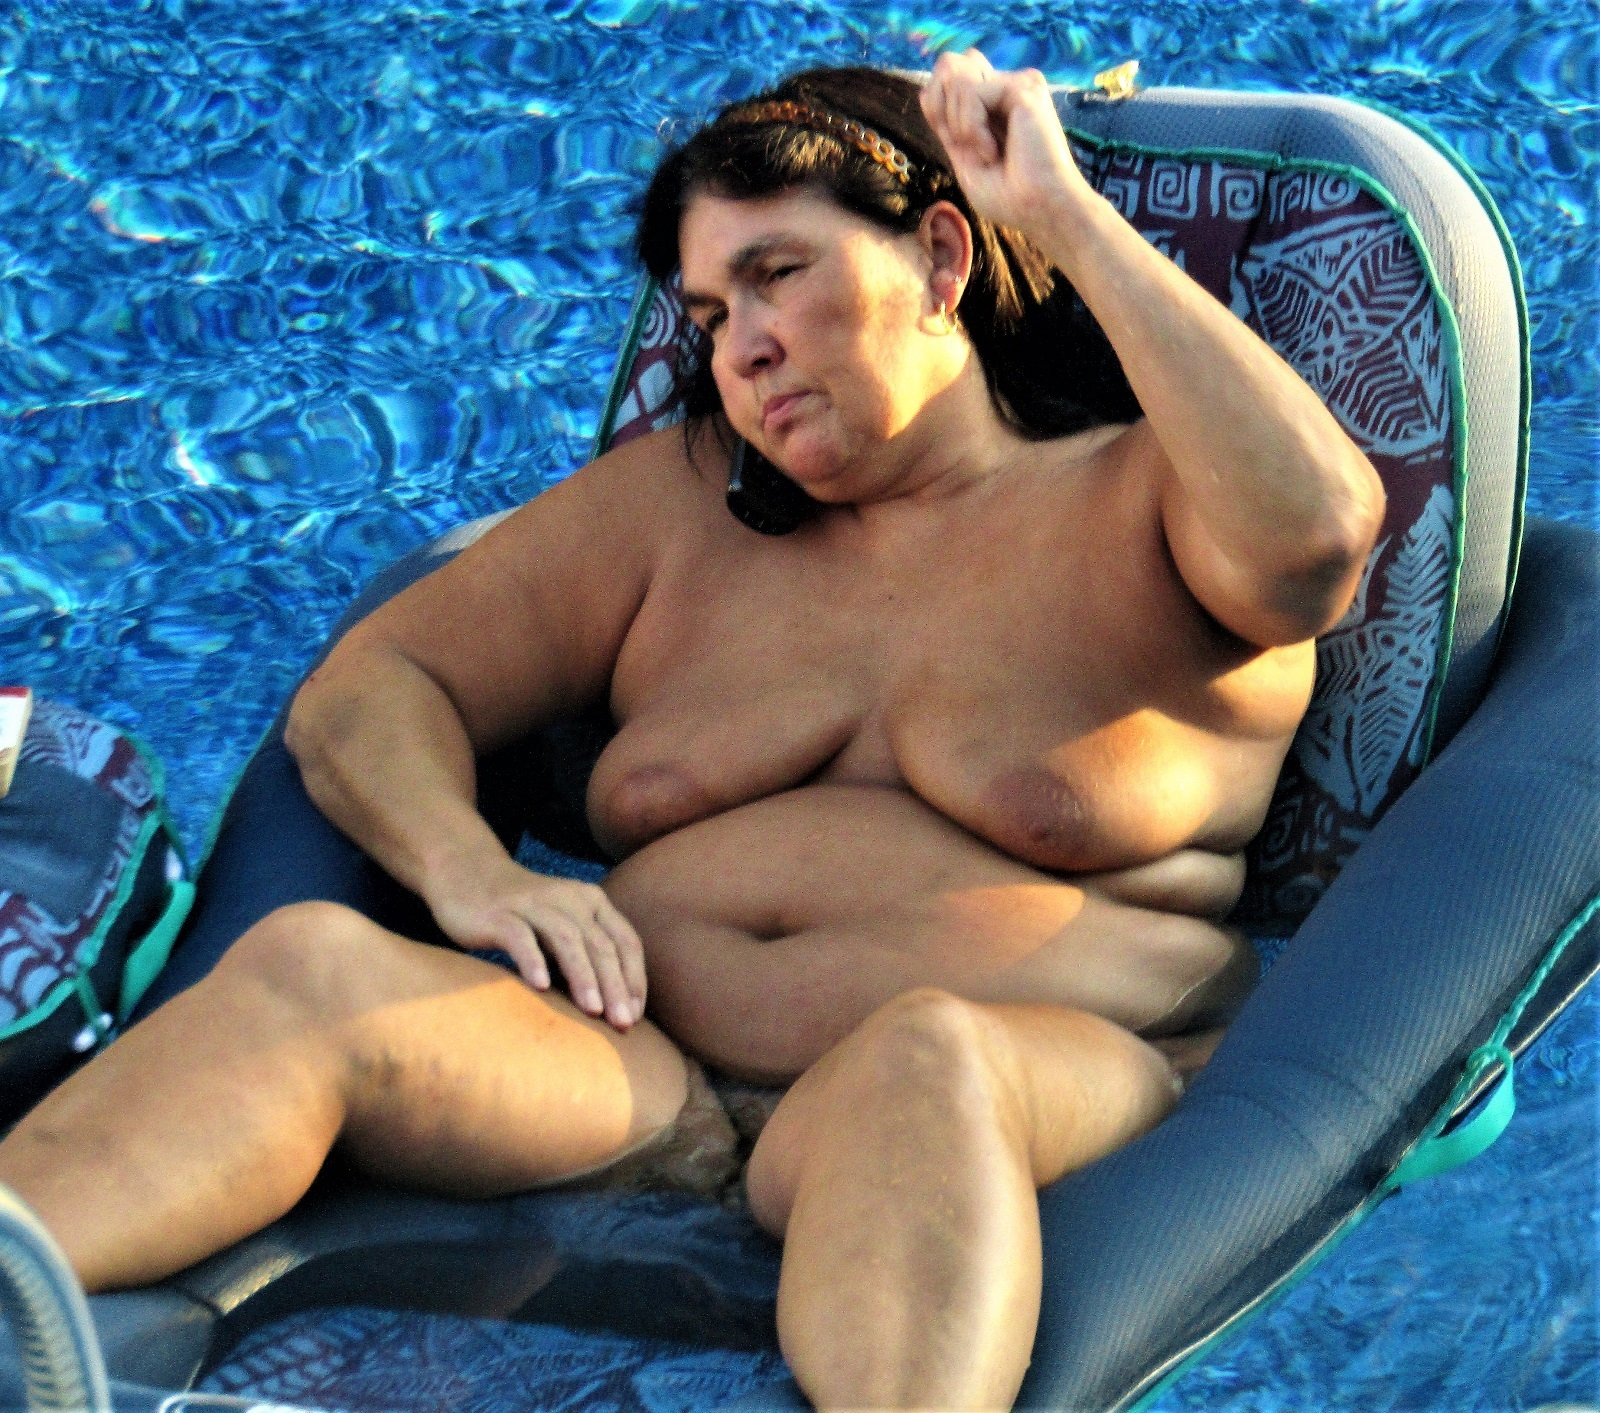 Wife naked at the pool valuable message